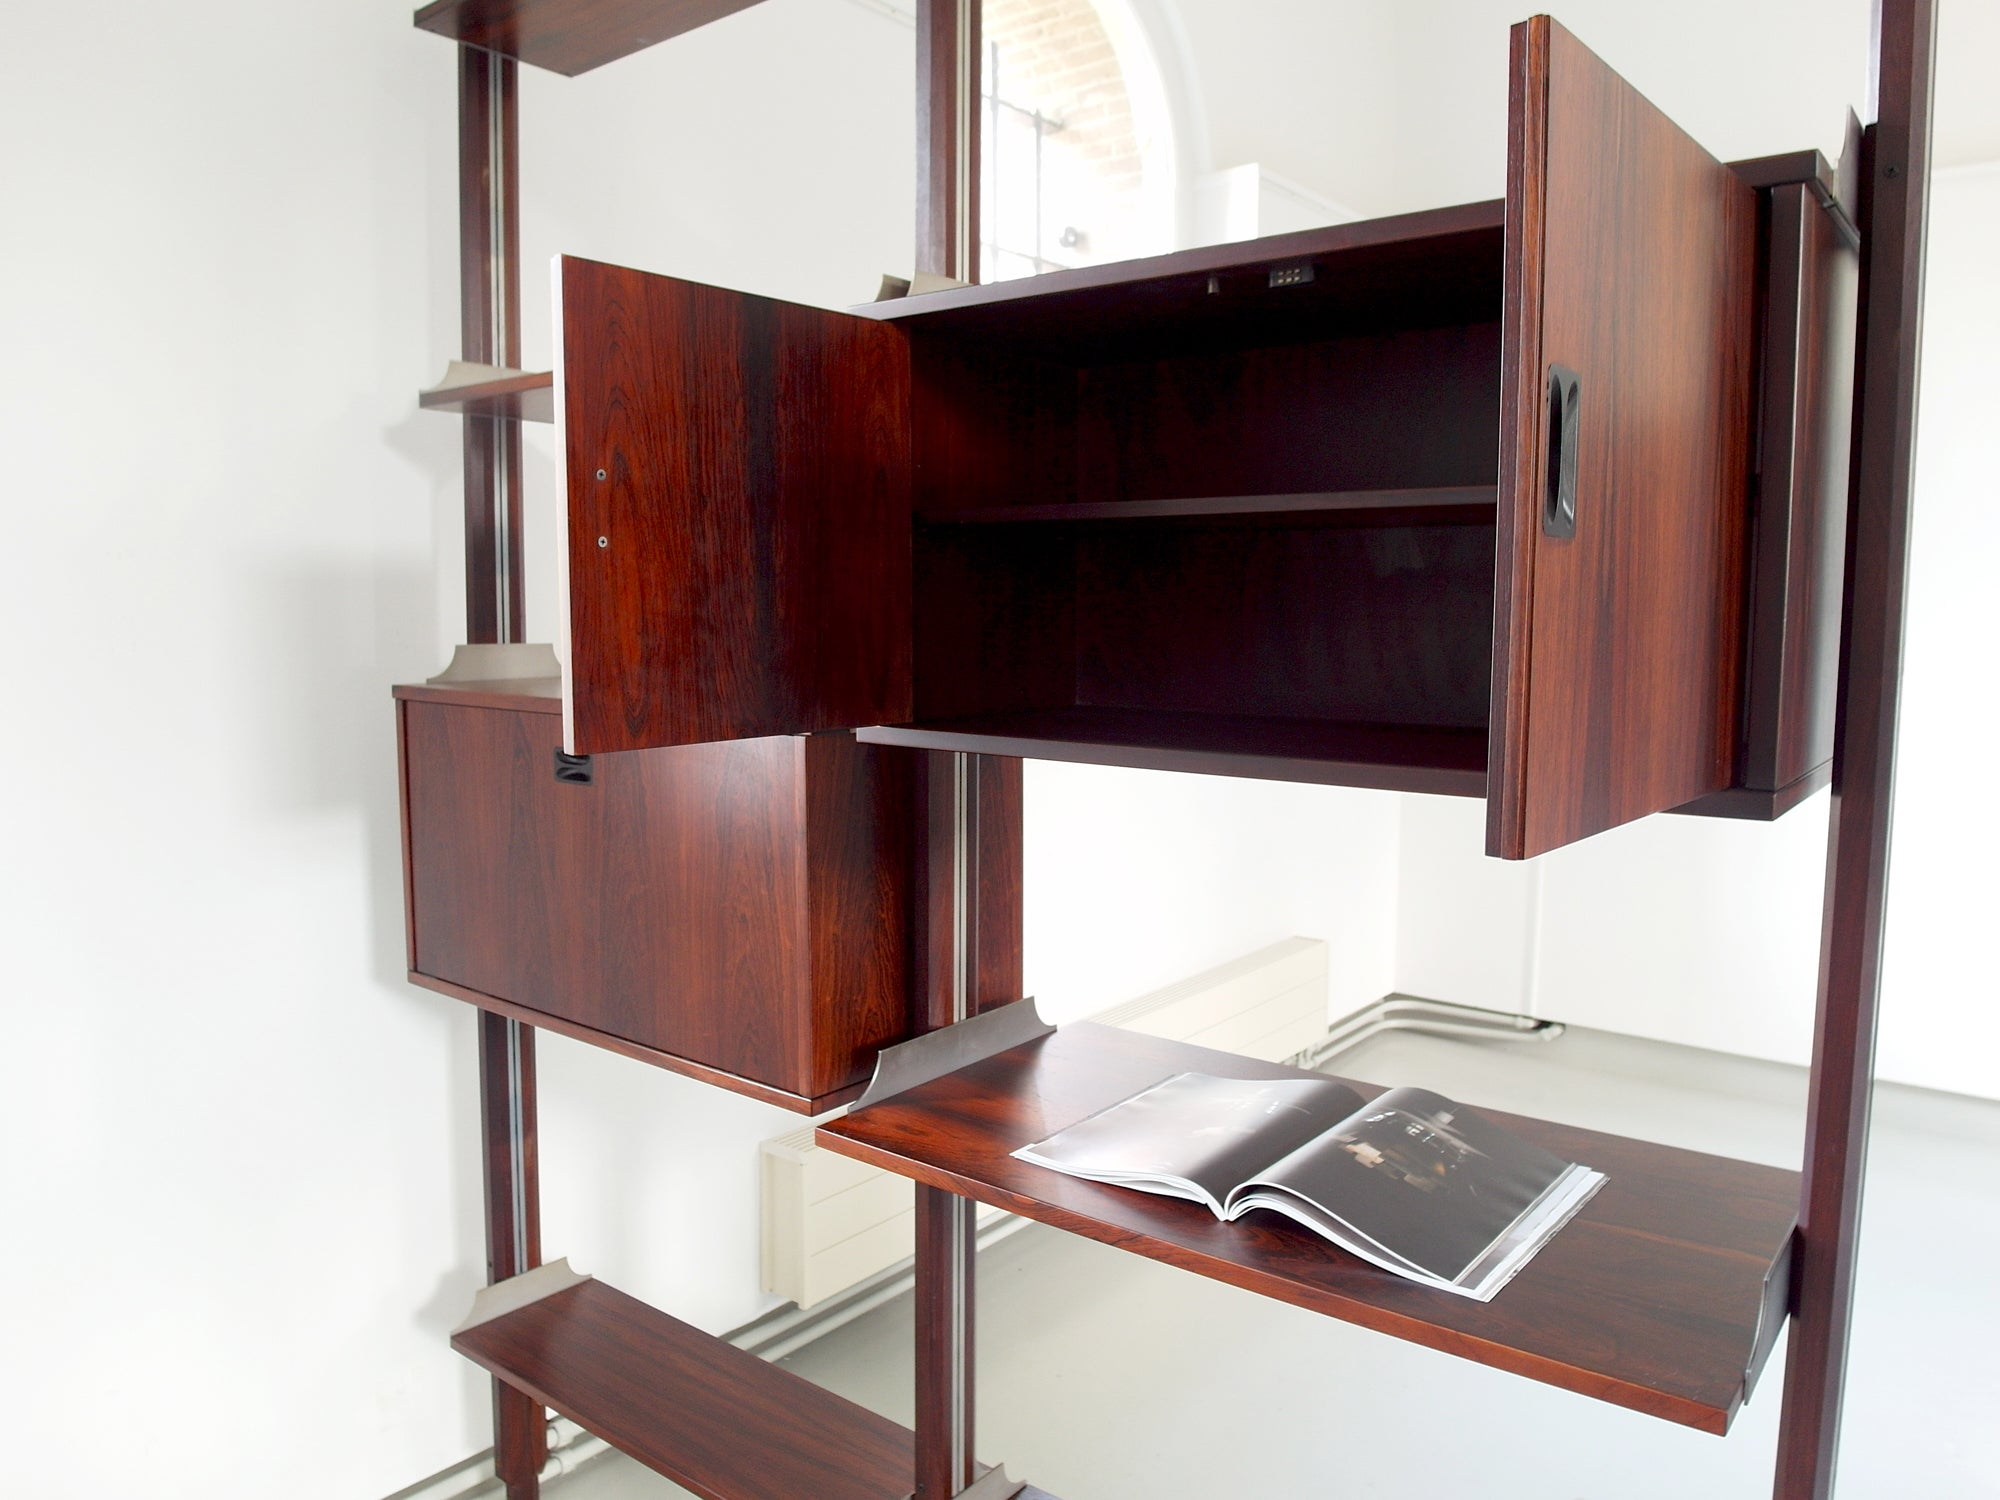 Stildomus Shelving System Library Executed In Caviuna Wood, Italy Ca